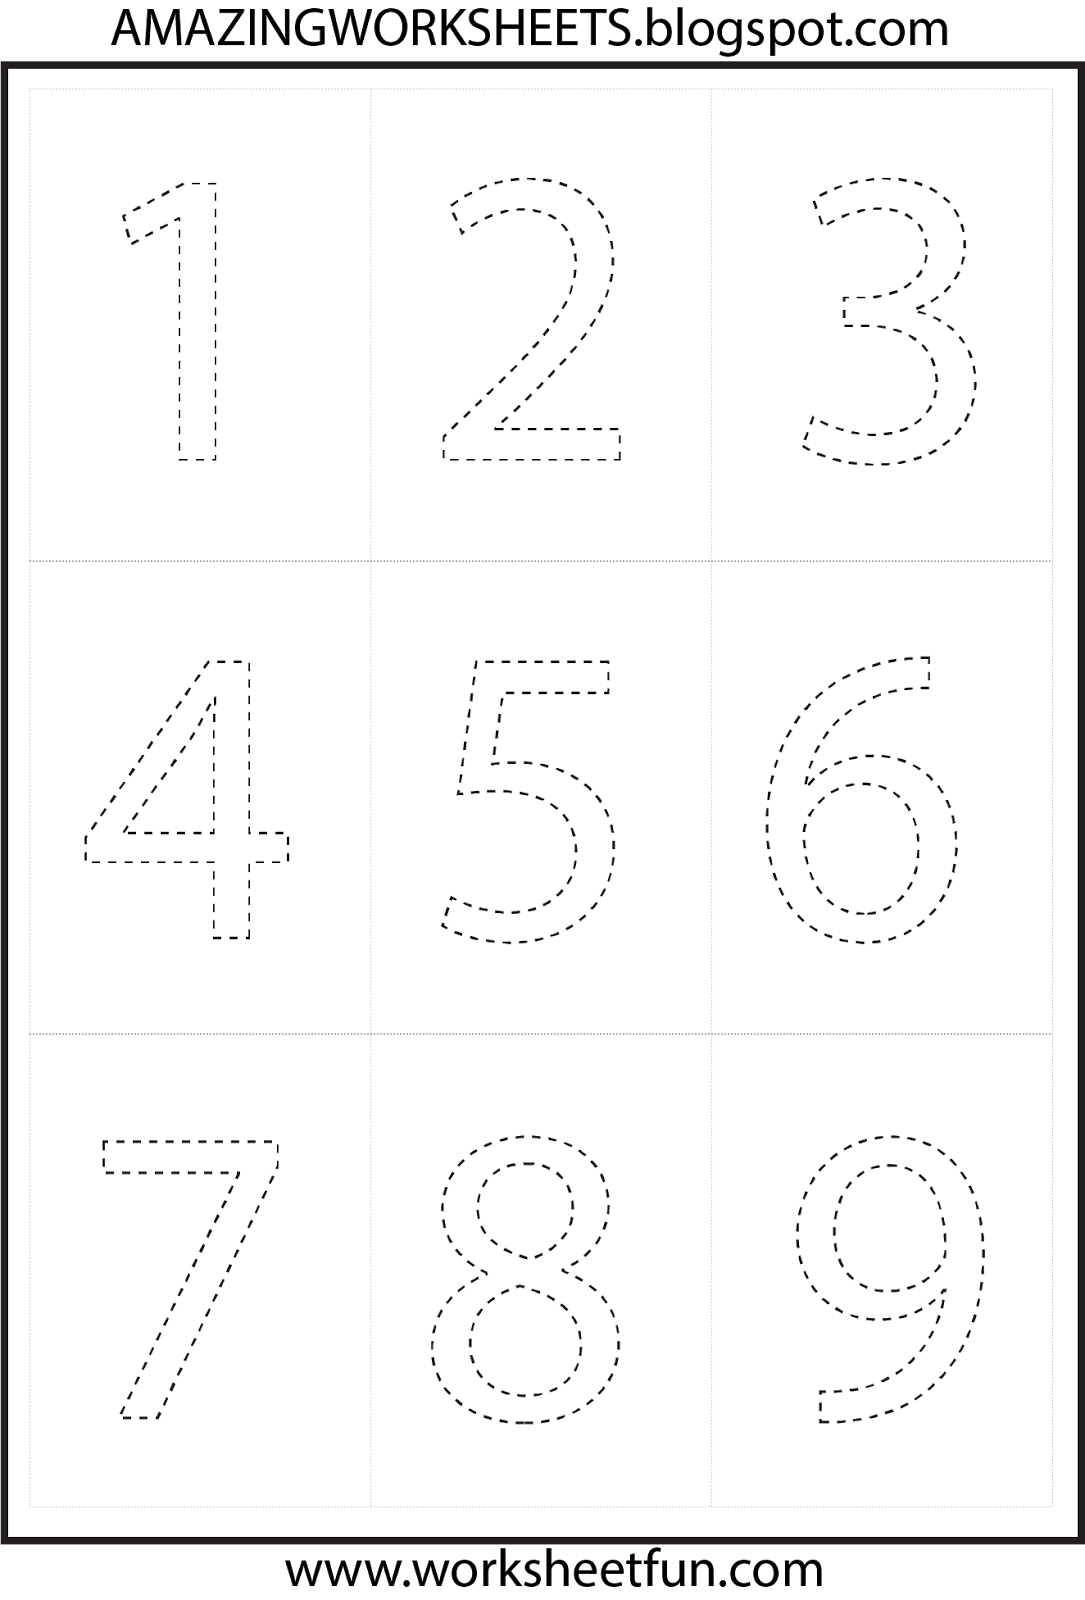 Workbooks trace numbers worksheets : Pretty Tracing Numbers Printable Educational Worksheets For ...